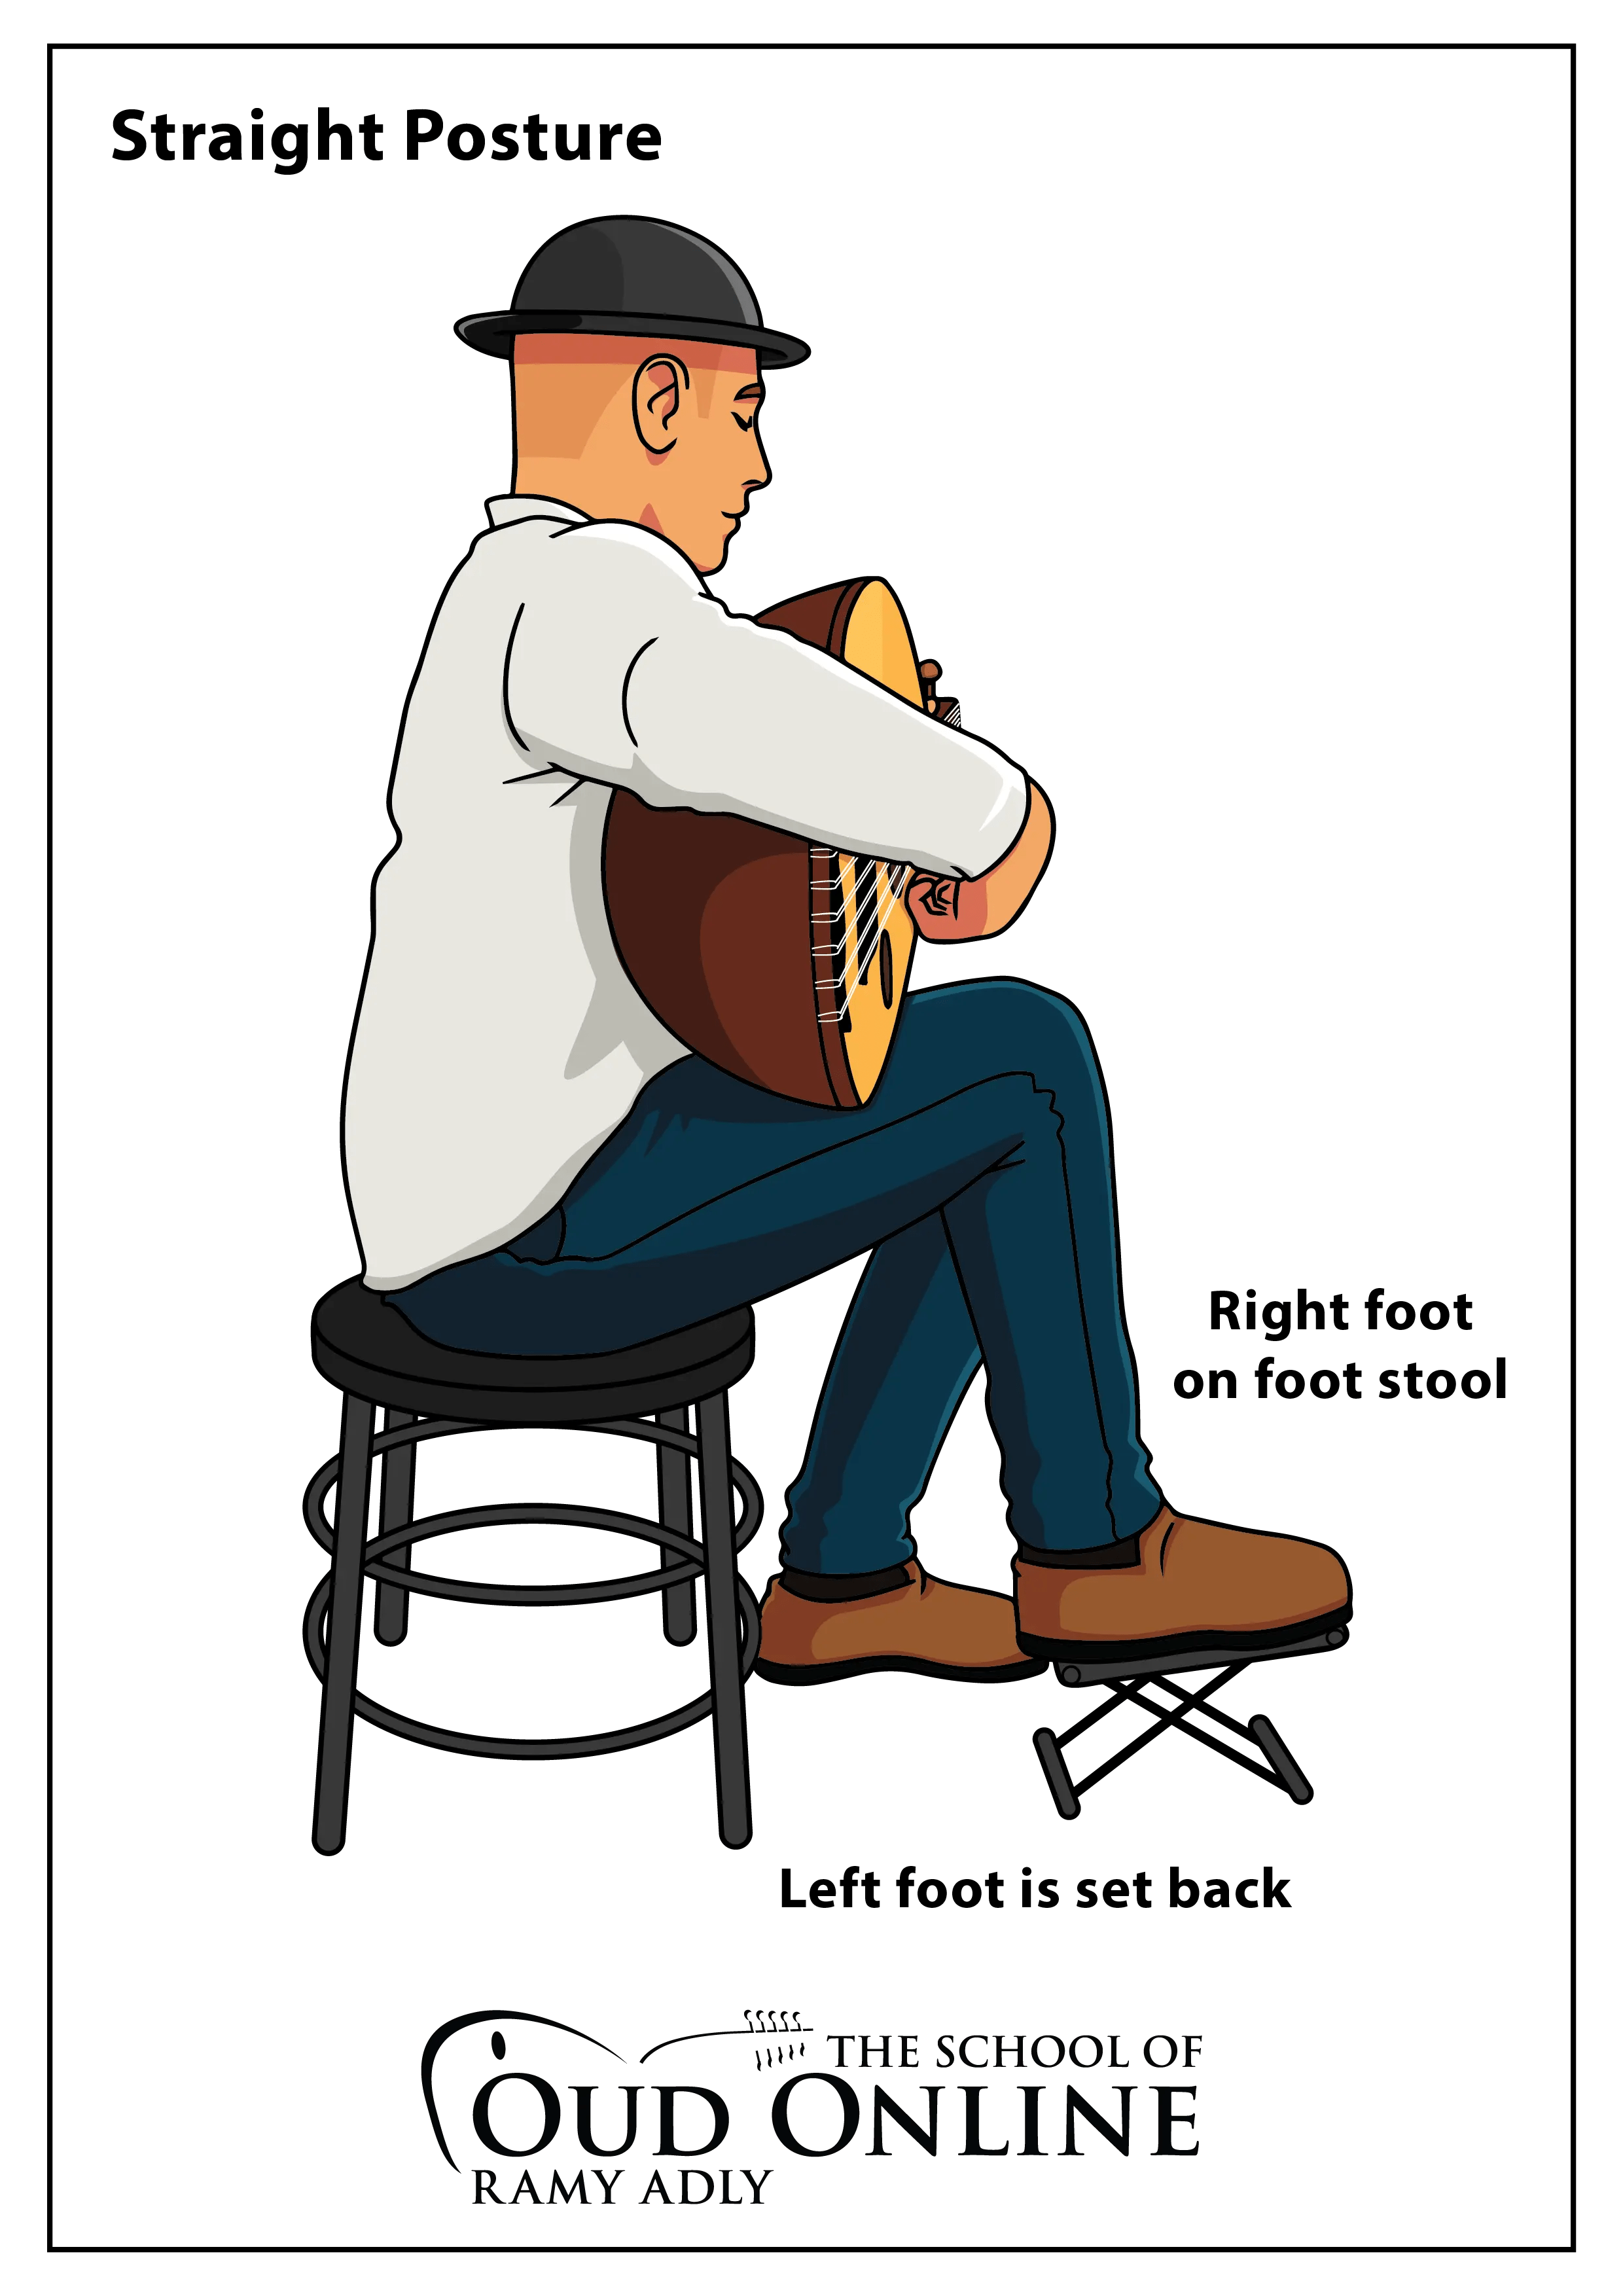 The healthy way of holding the Oud while practicing